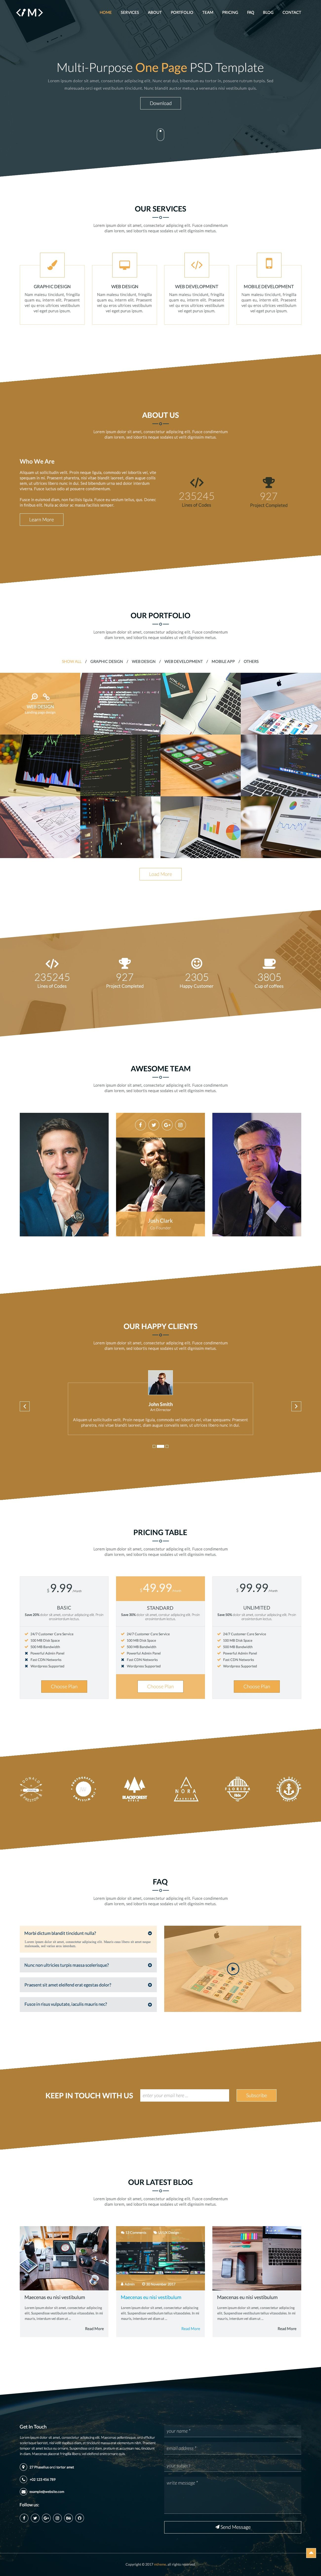 MTheme - Multi-Purpose One Page PSD Template Screenshot 16